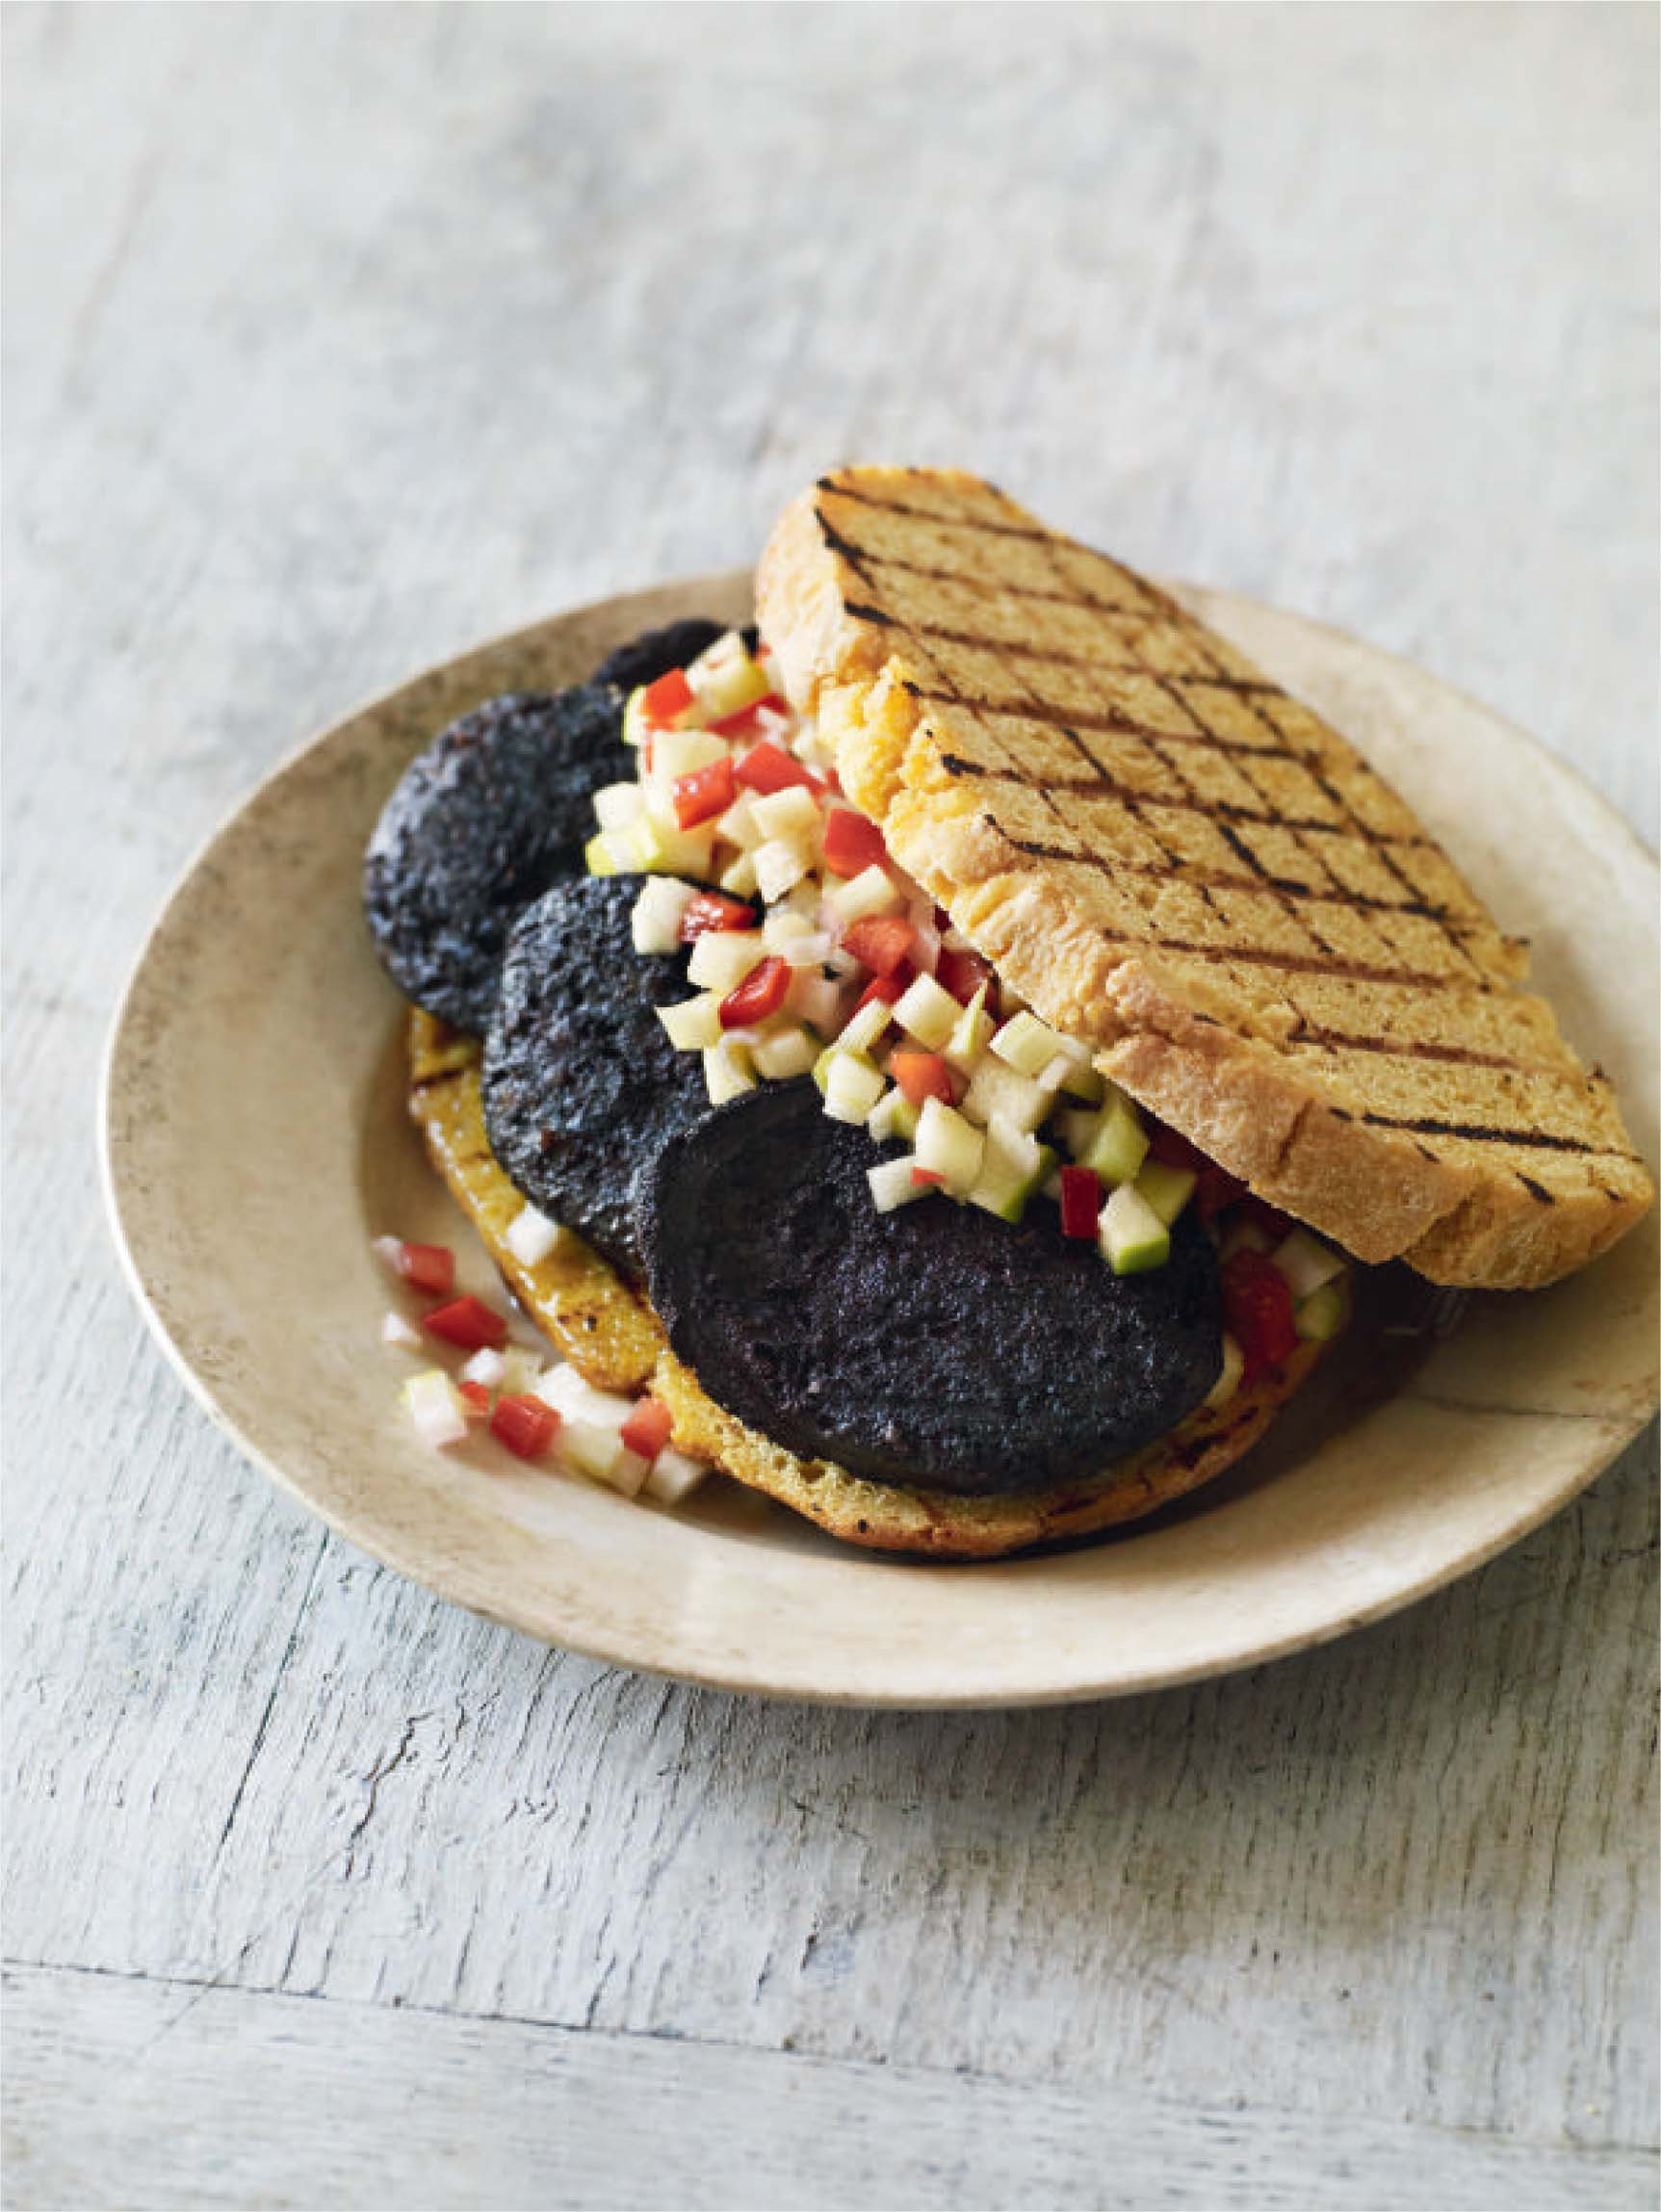 Black pudding and apple sandwich